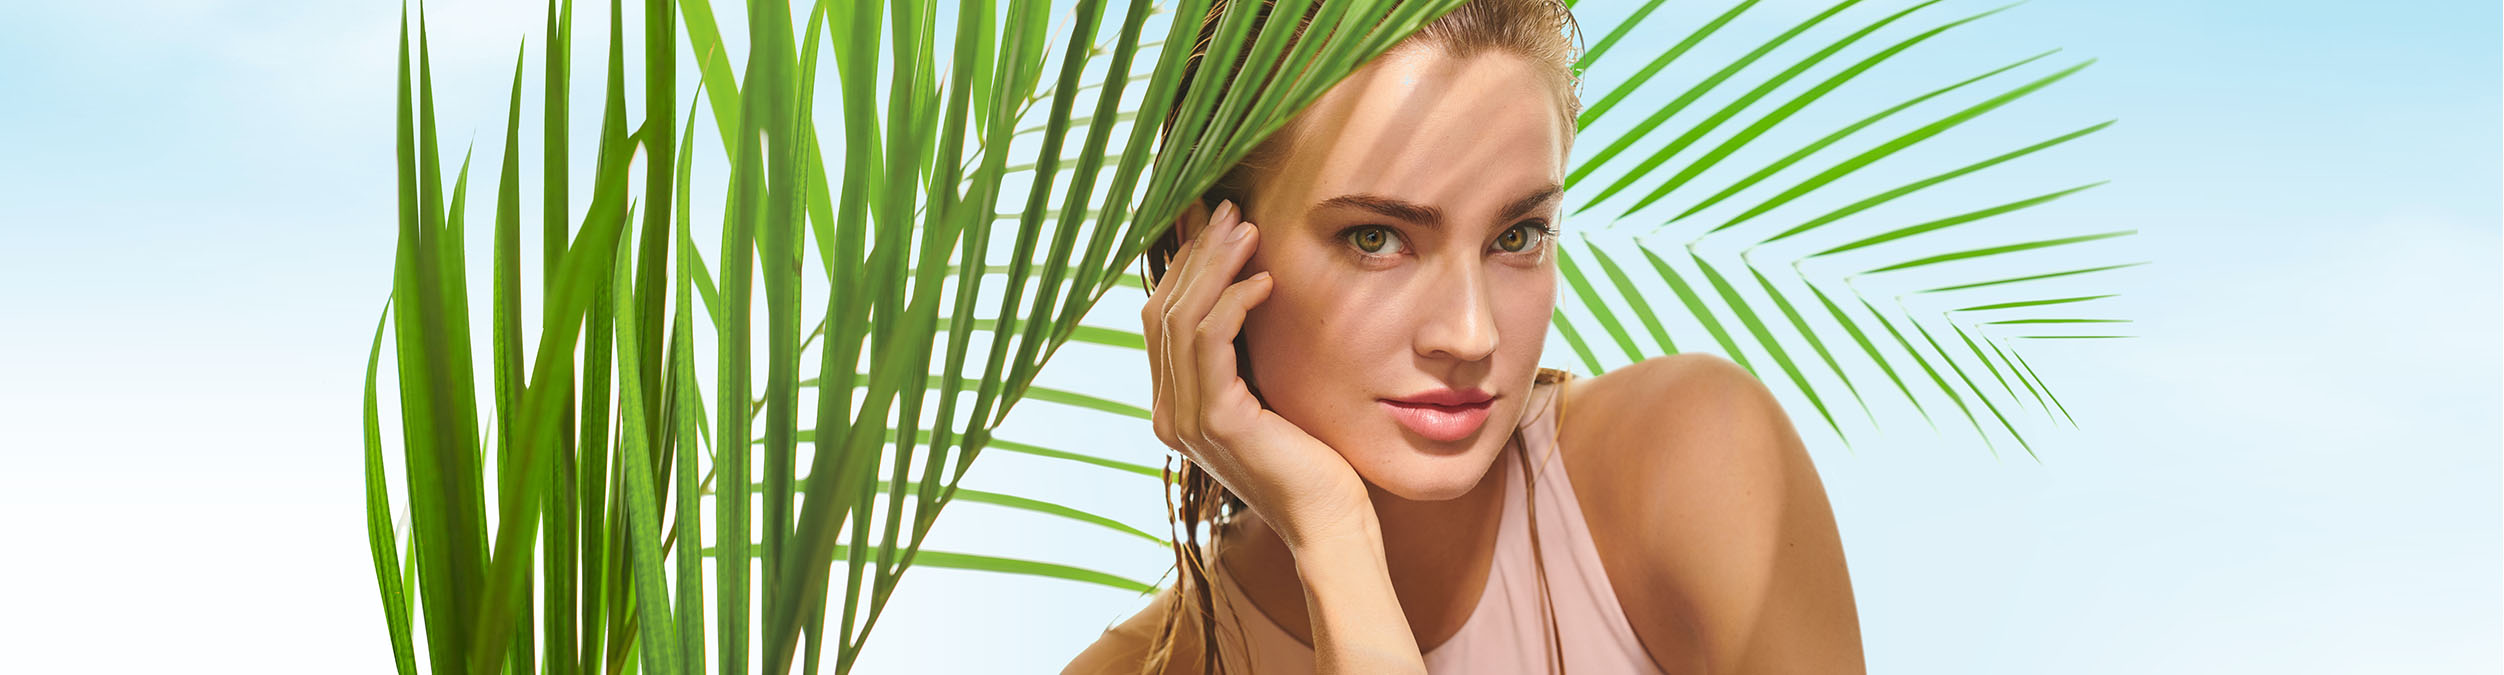 A sun-kissed woman looks through some palm tree leaves